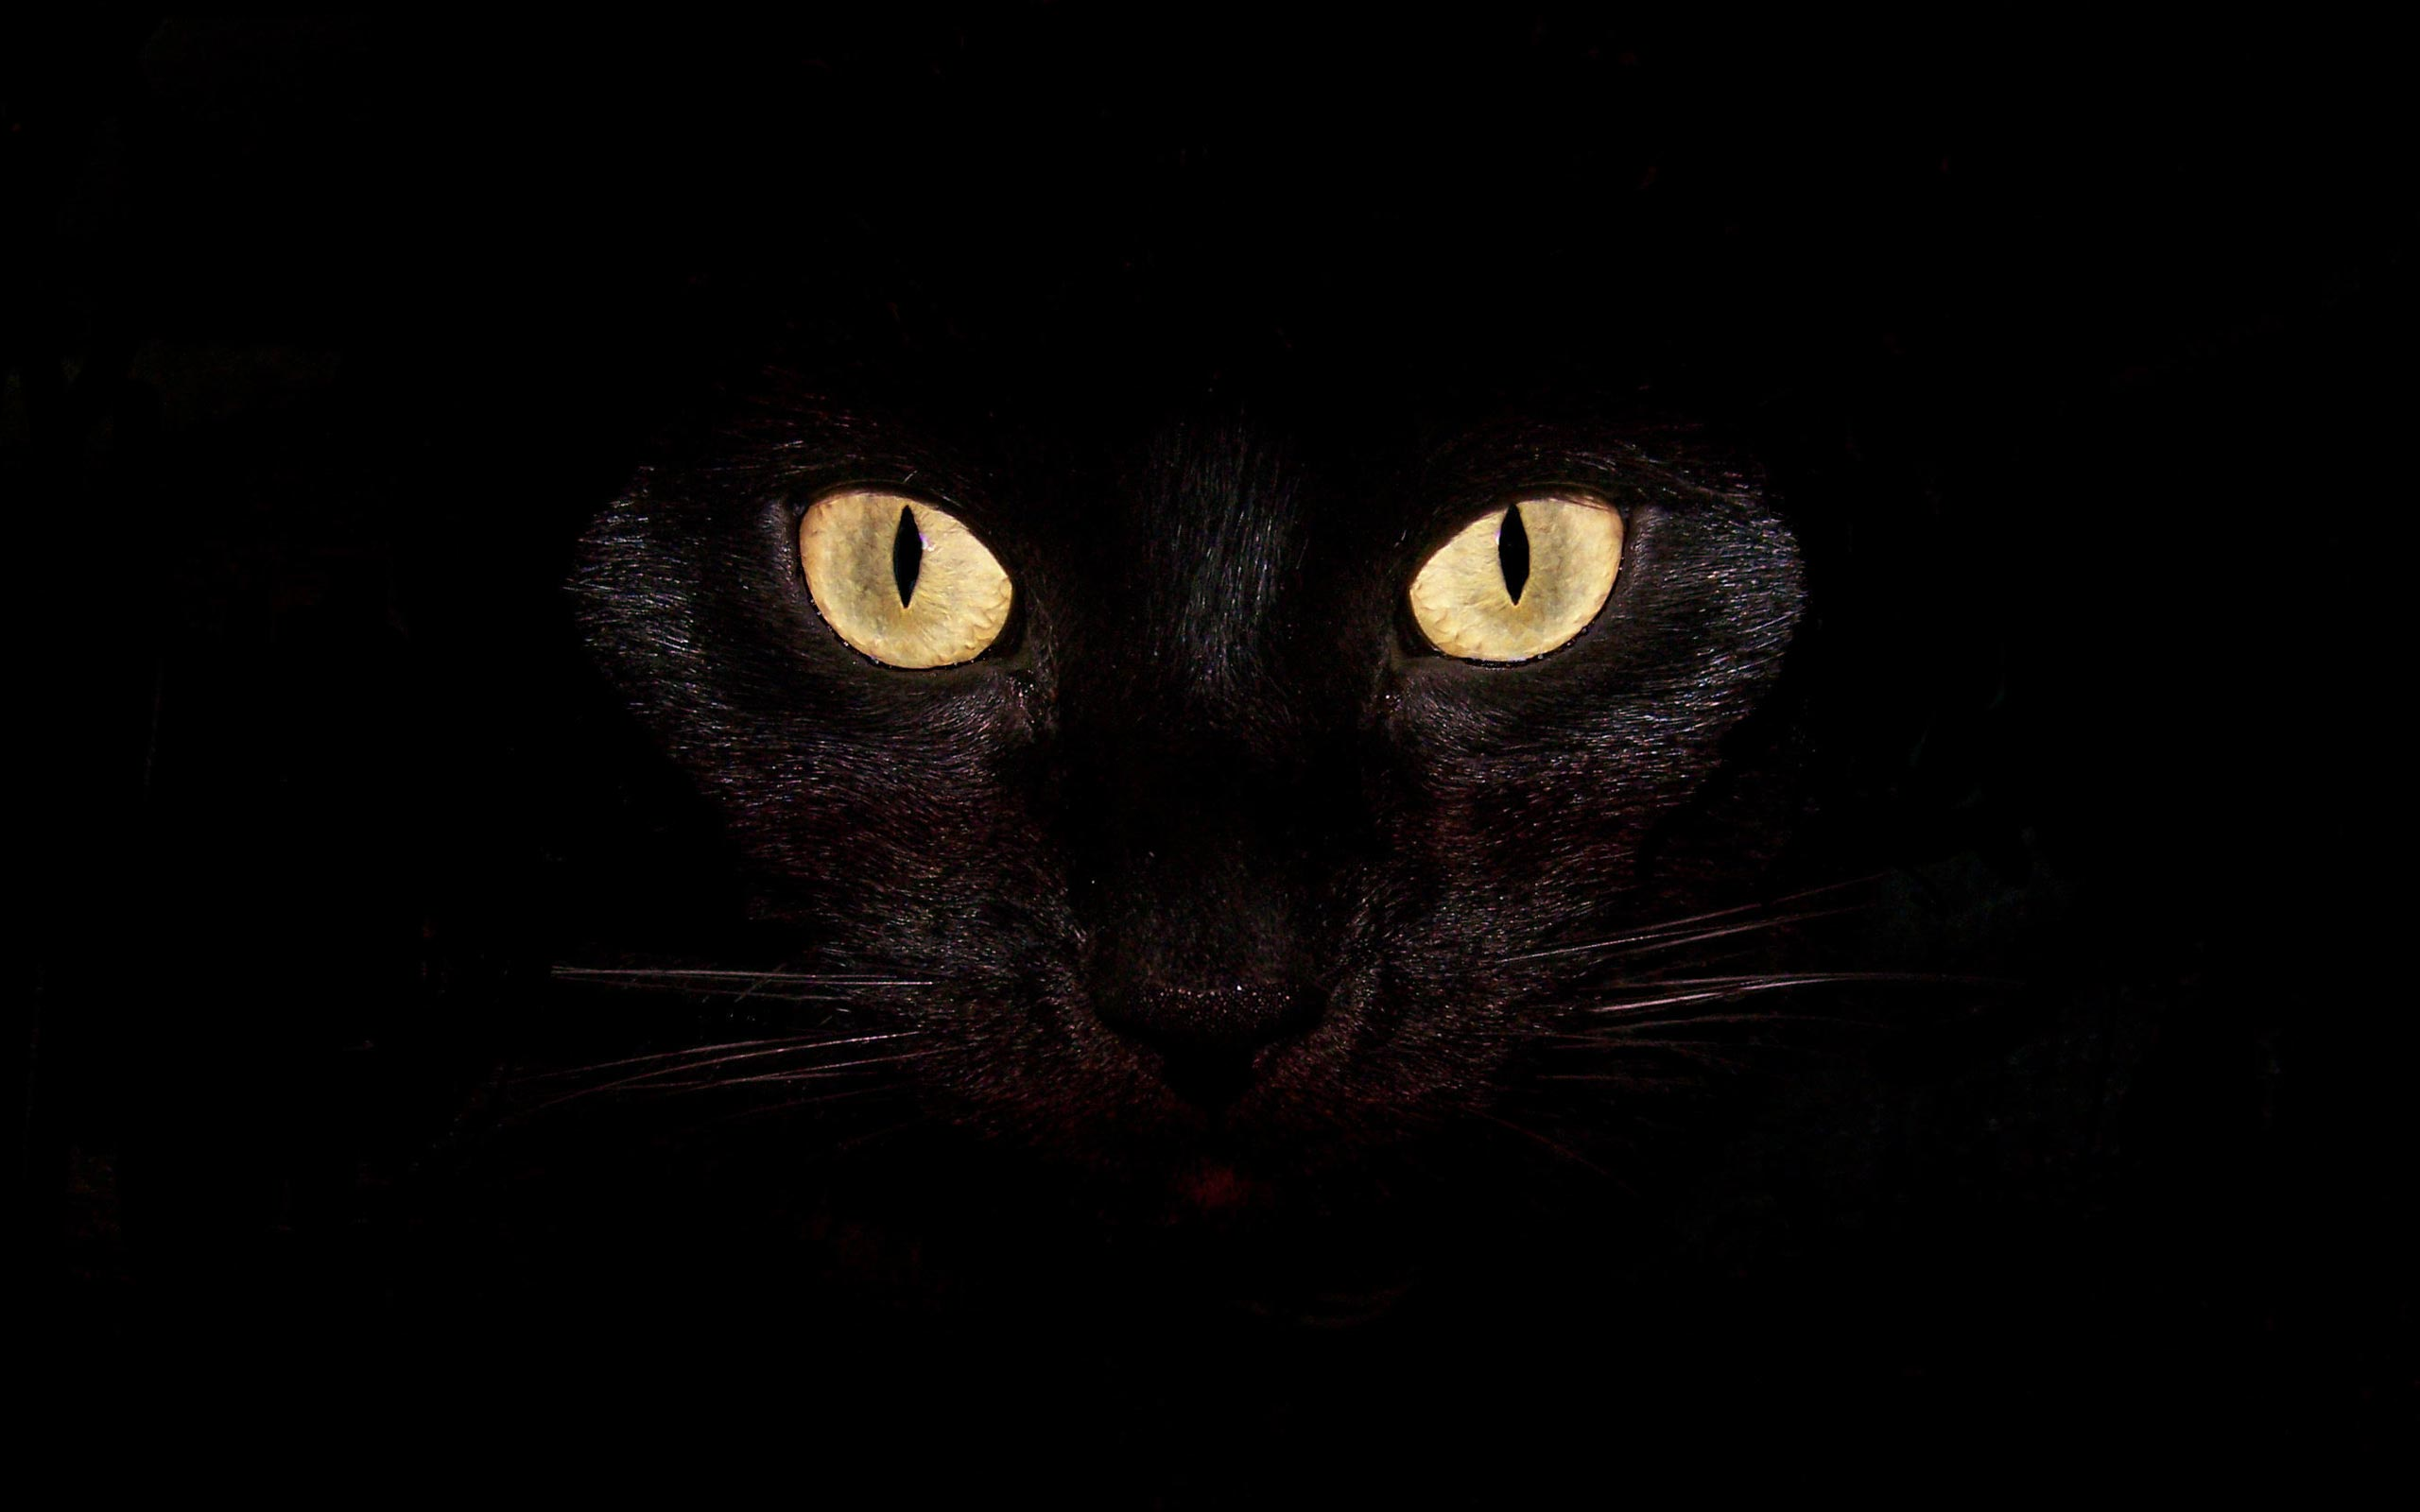 Black cat desktop backgrounds Wallpaper 2560x1600